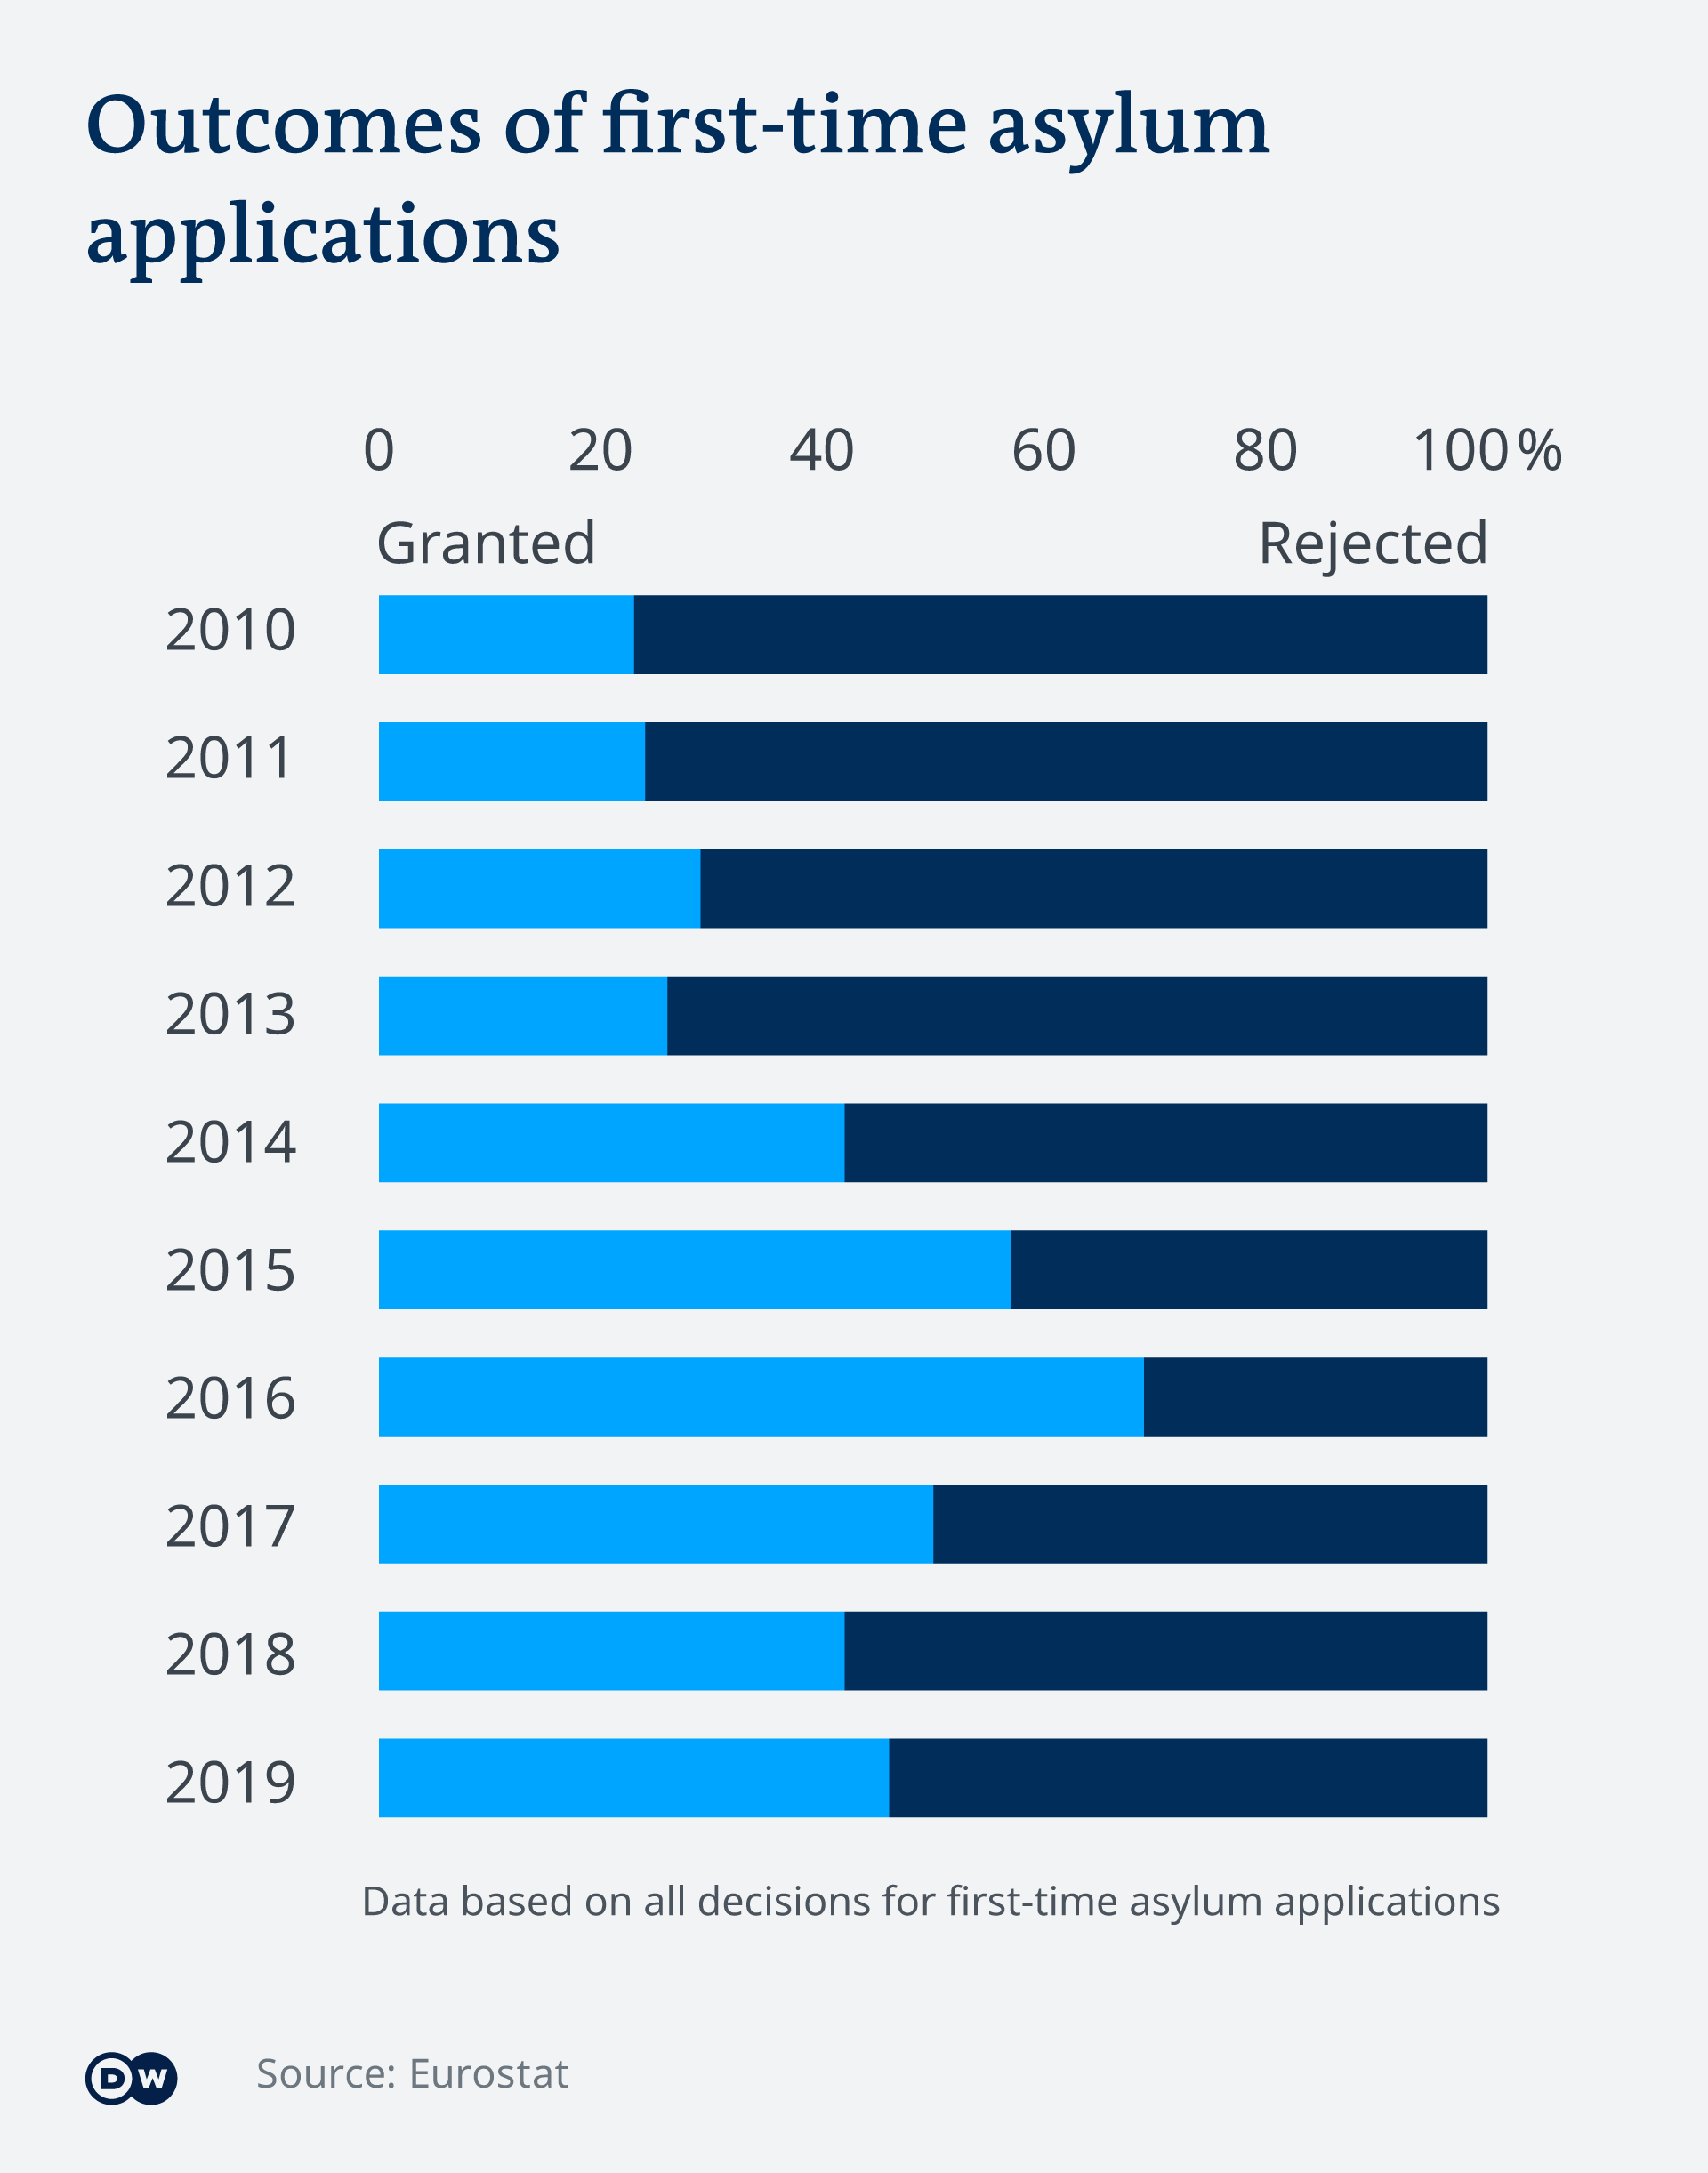 Vsualization of numbers showing that with the exception of 2016 most applications were rejected